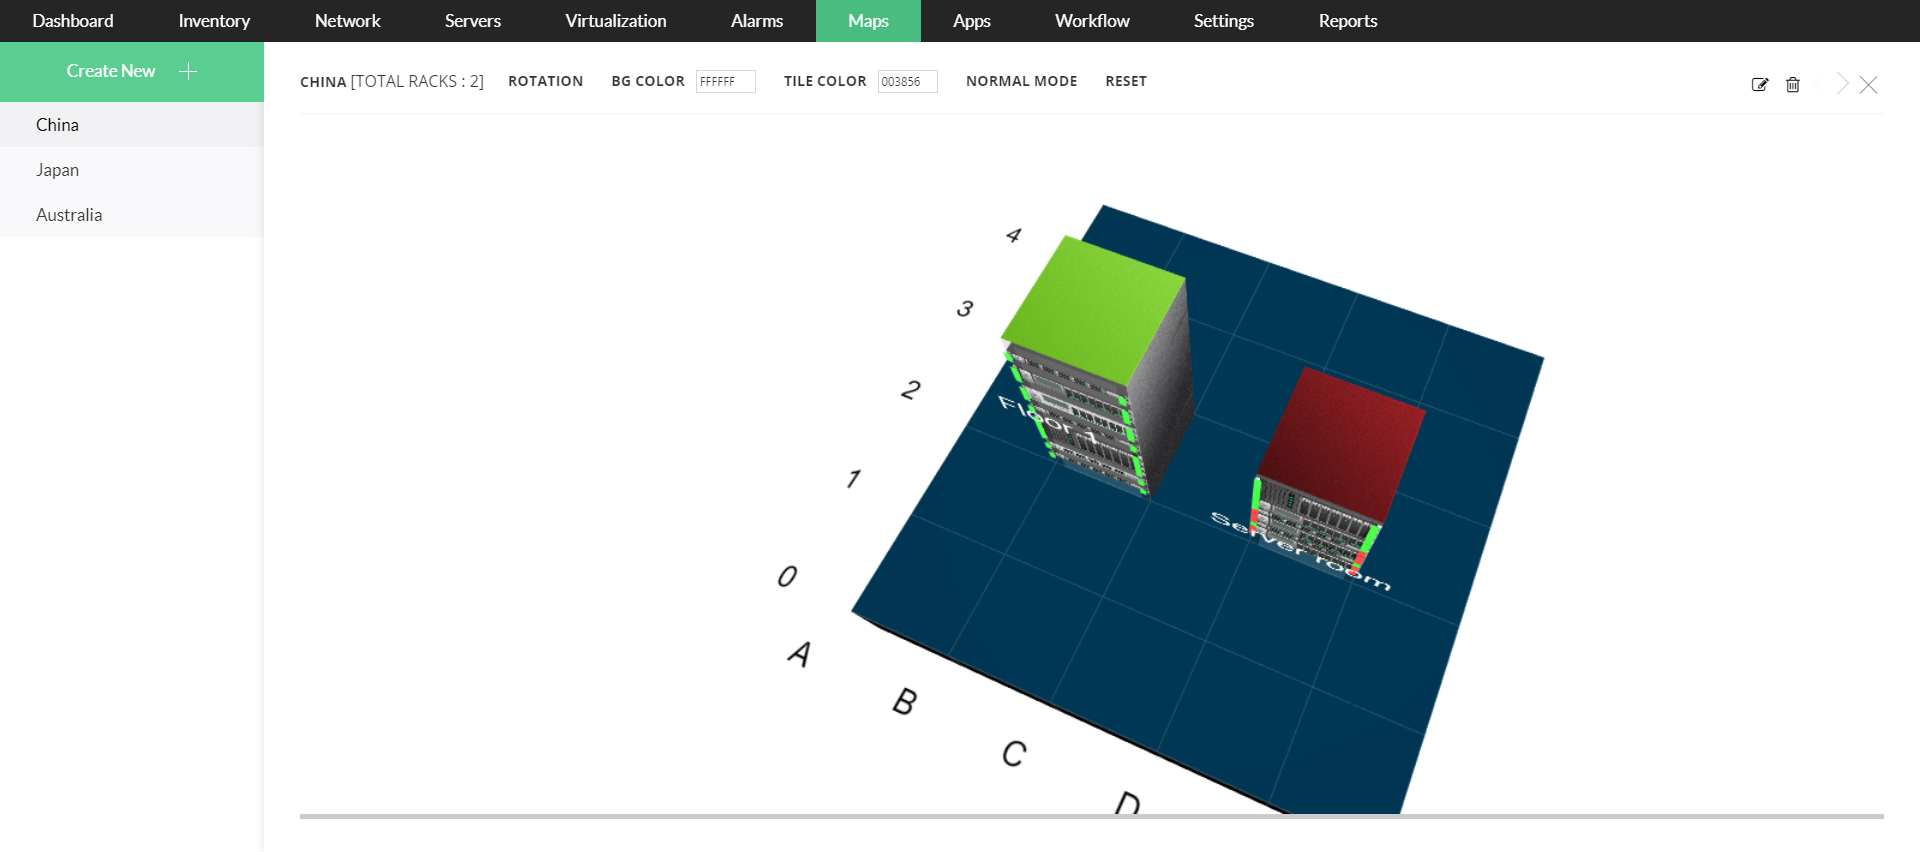 L2 Discovery - 3D Floor view - ManageEngine OpManager